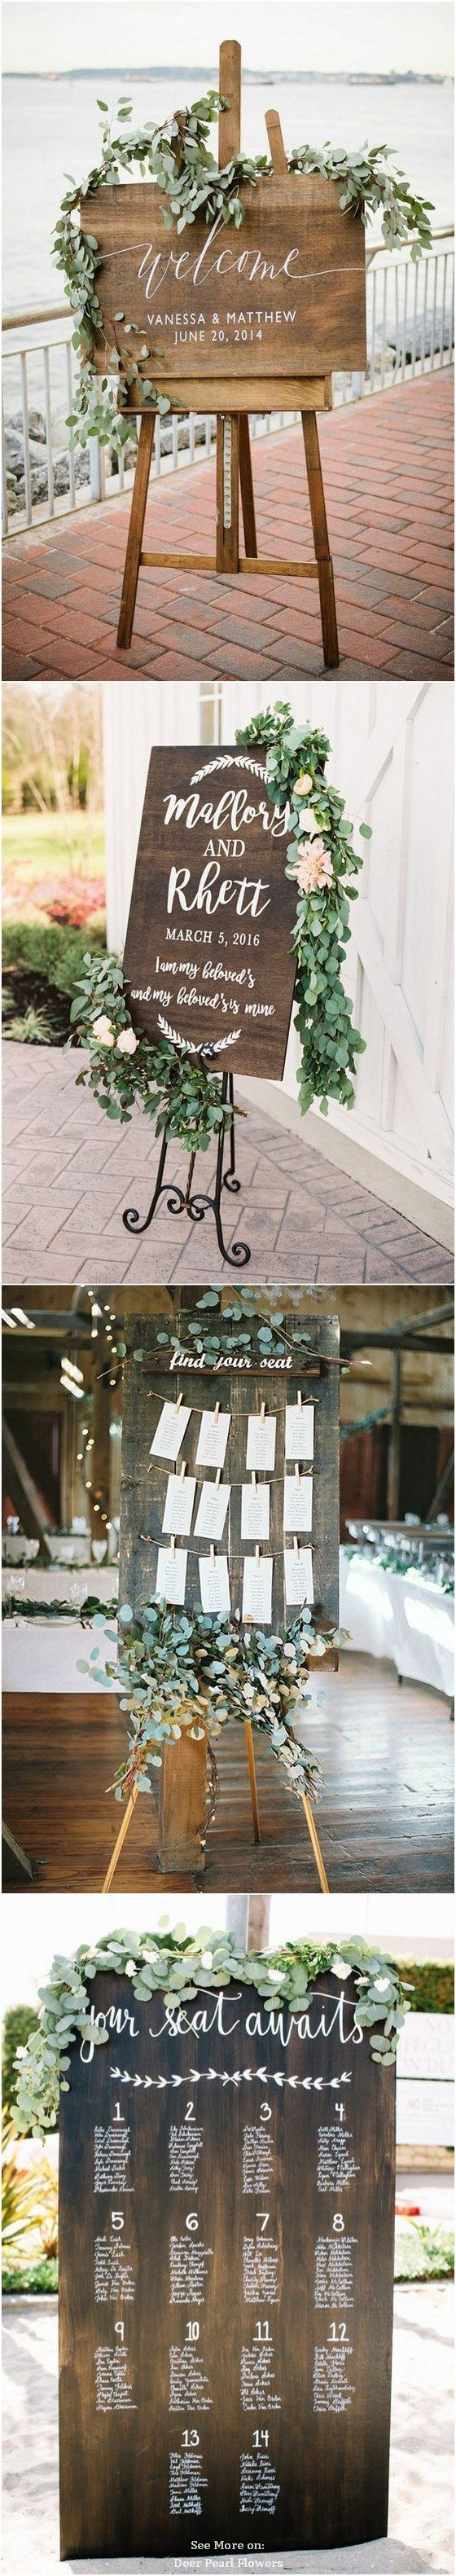 Wedding decorations arch december 2018  best 陈列设计 images on Pinterest  Letter board Signage and